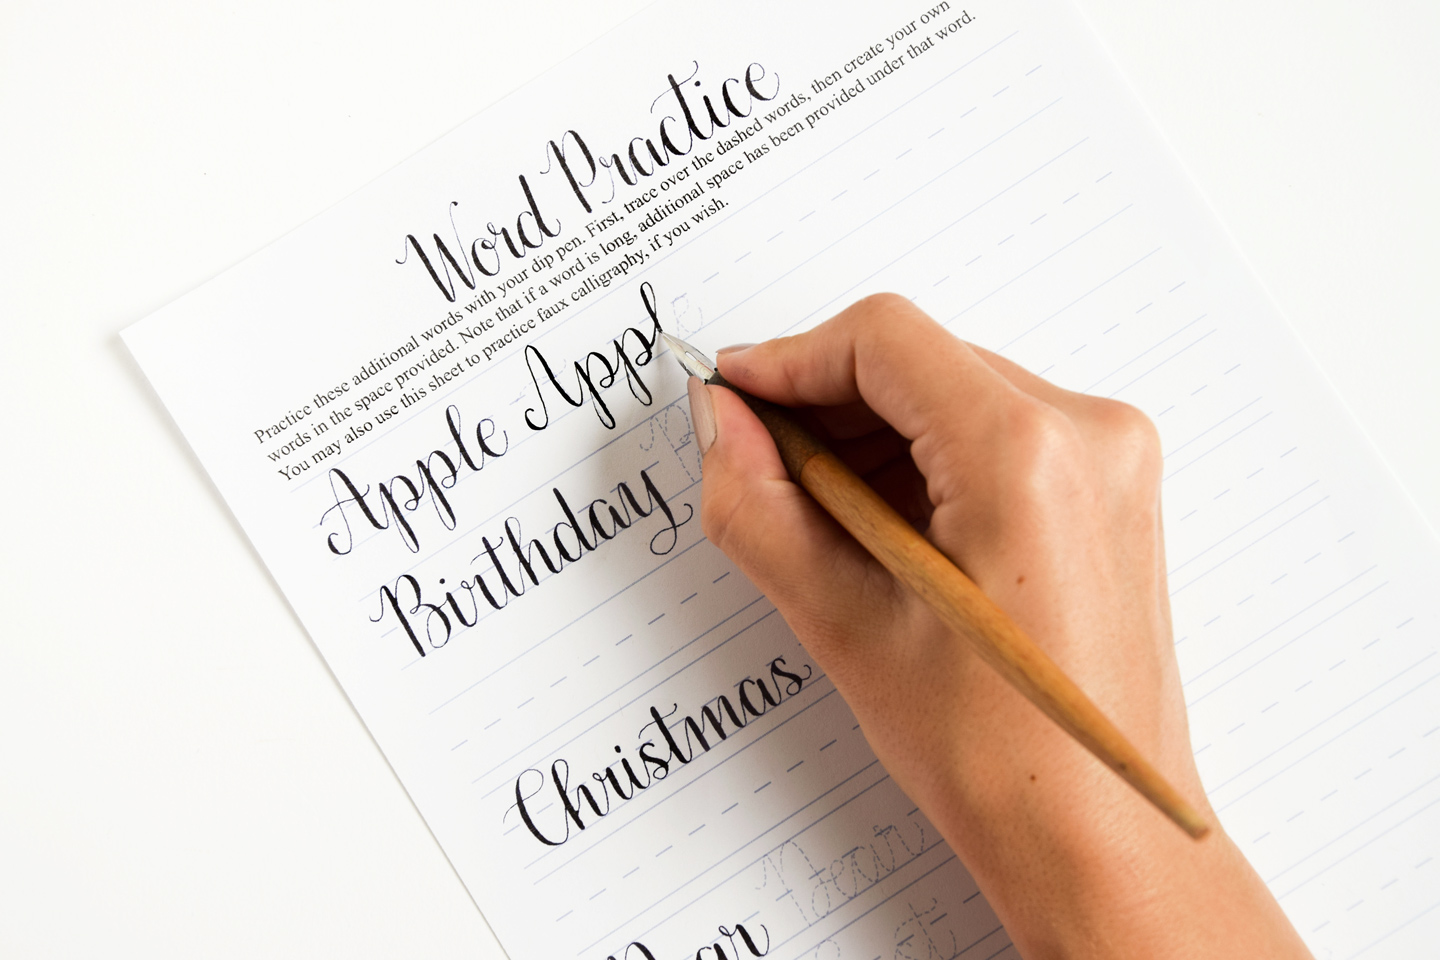 Learn calligraphy guidelines: best calligraphy papers for practice